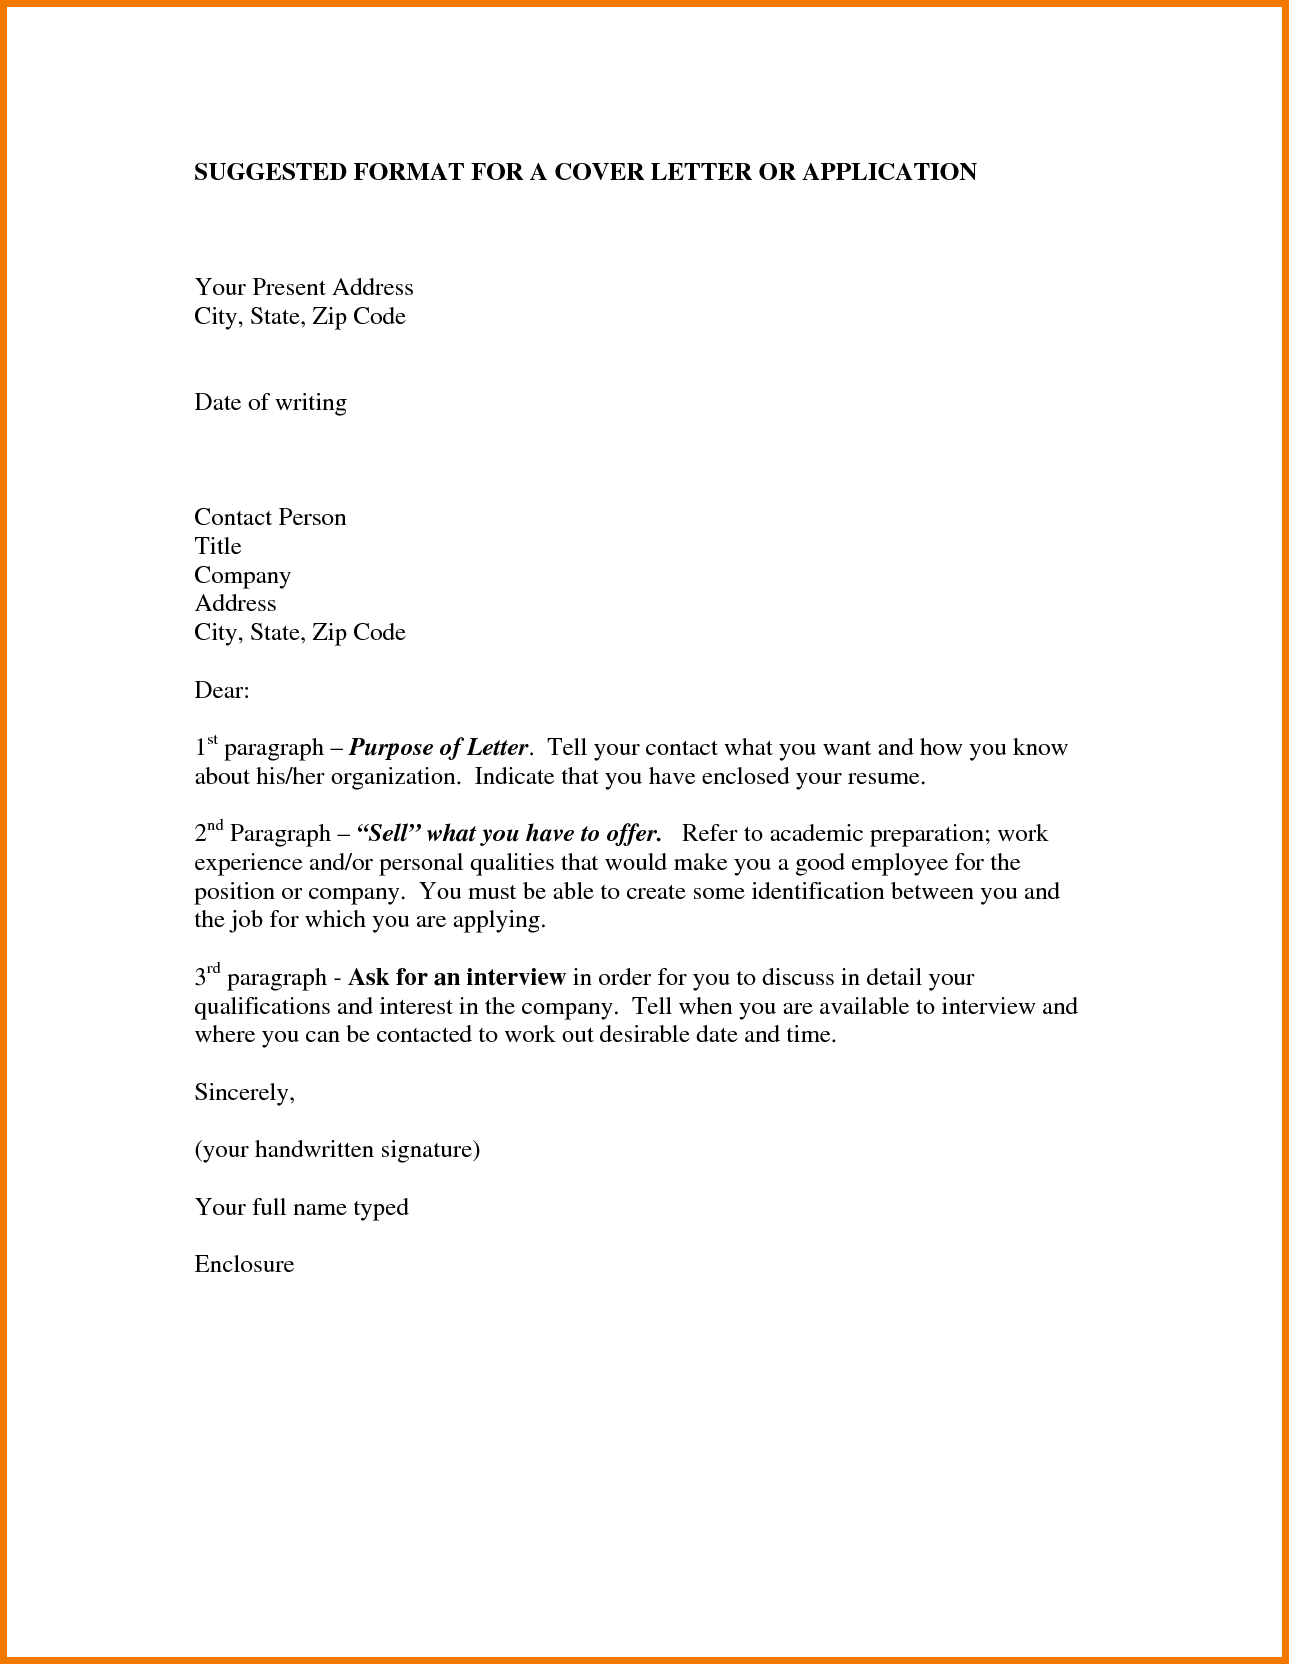 New Application Letter For Lecturer Job Application Letters